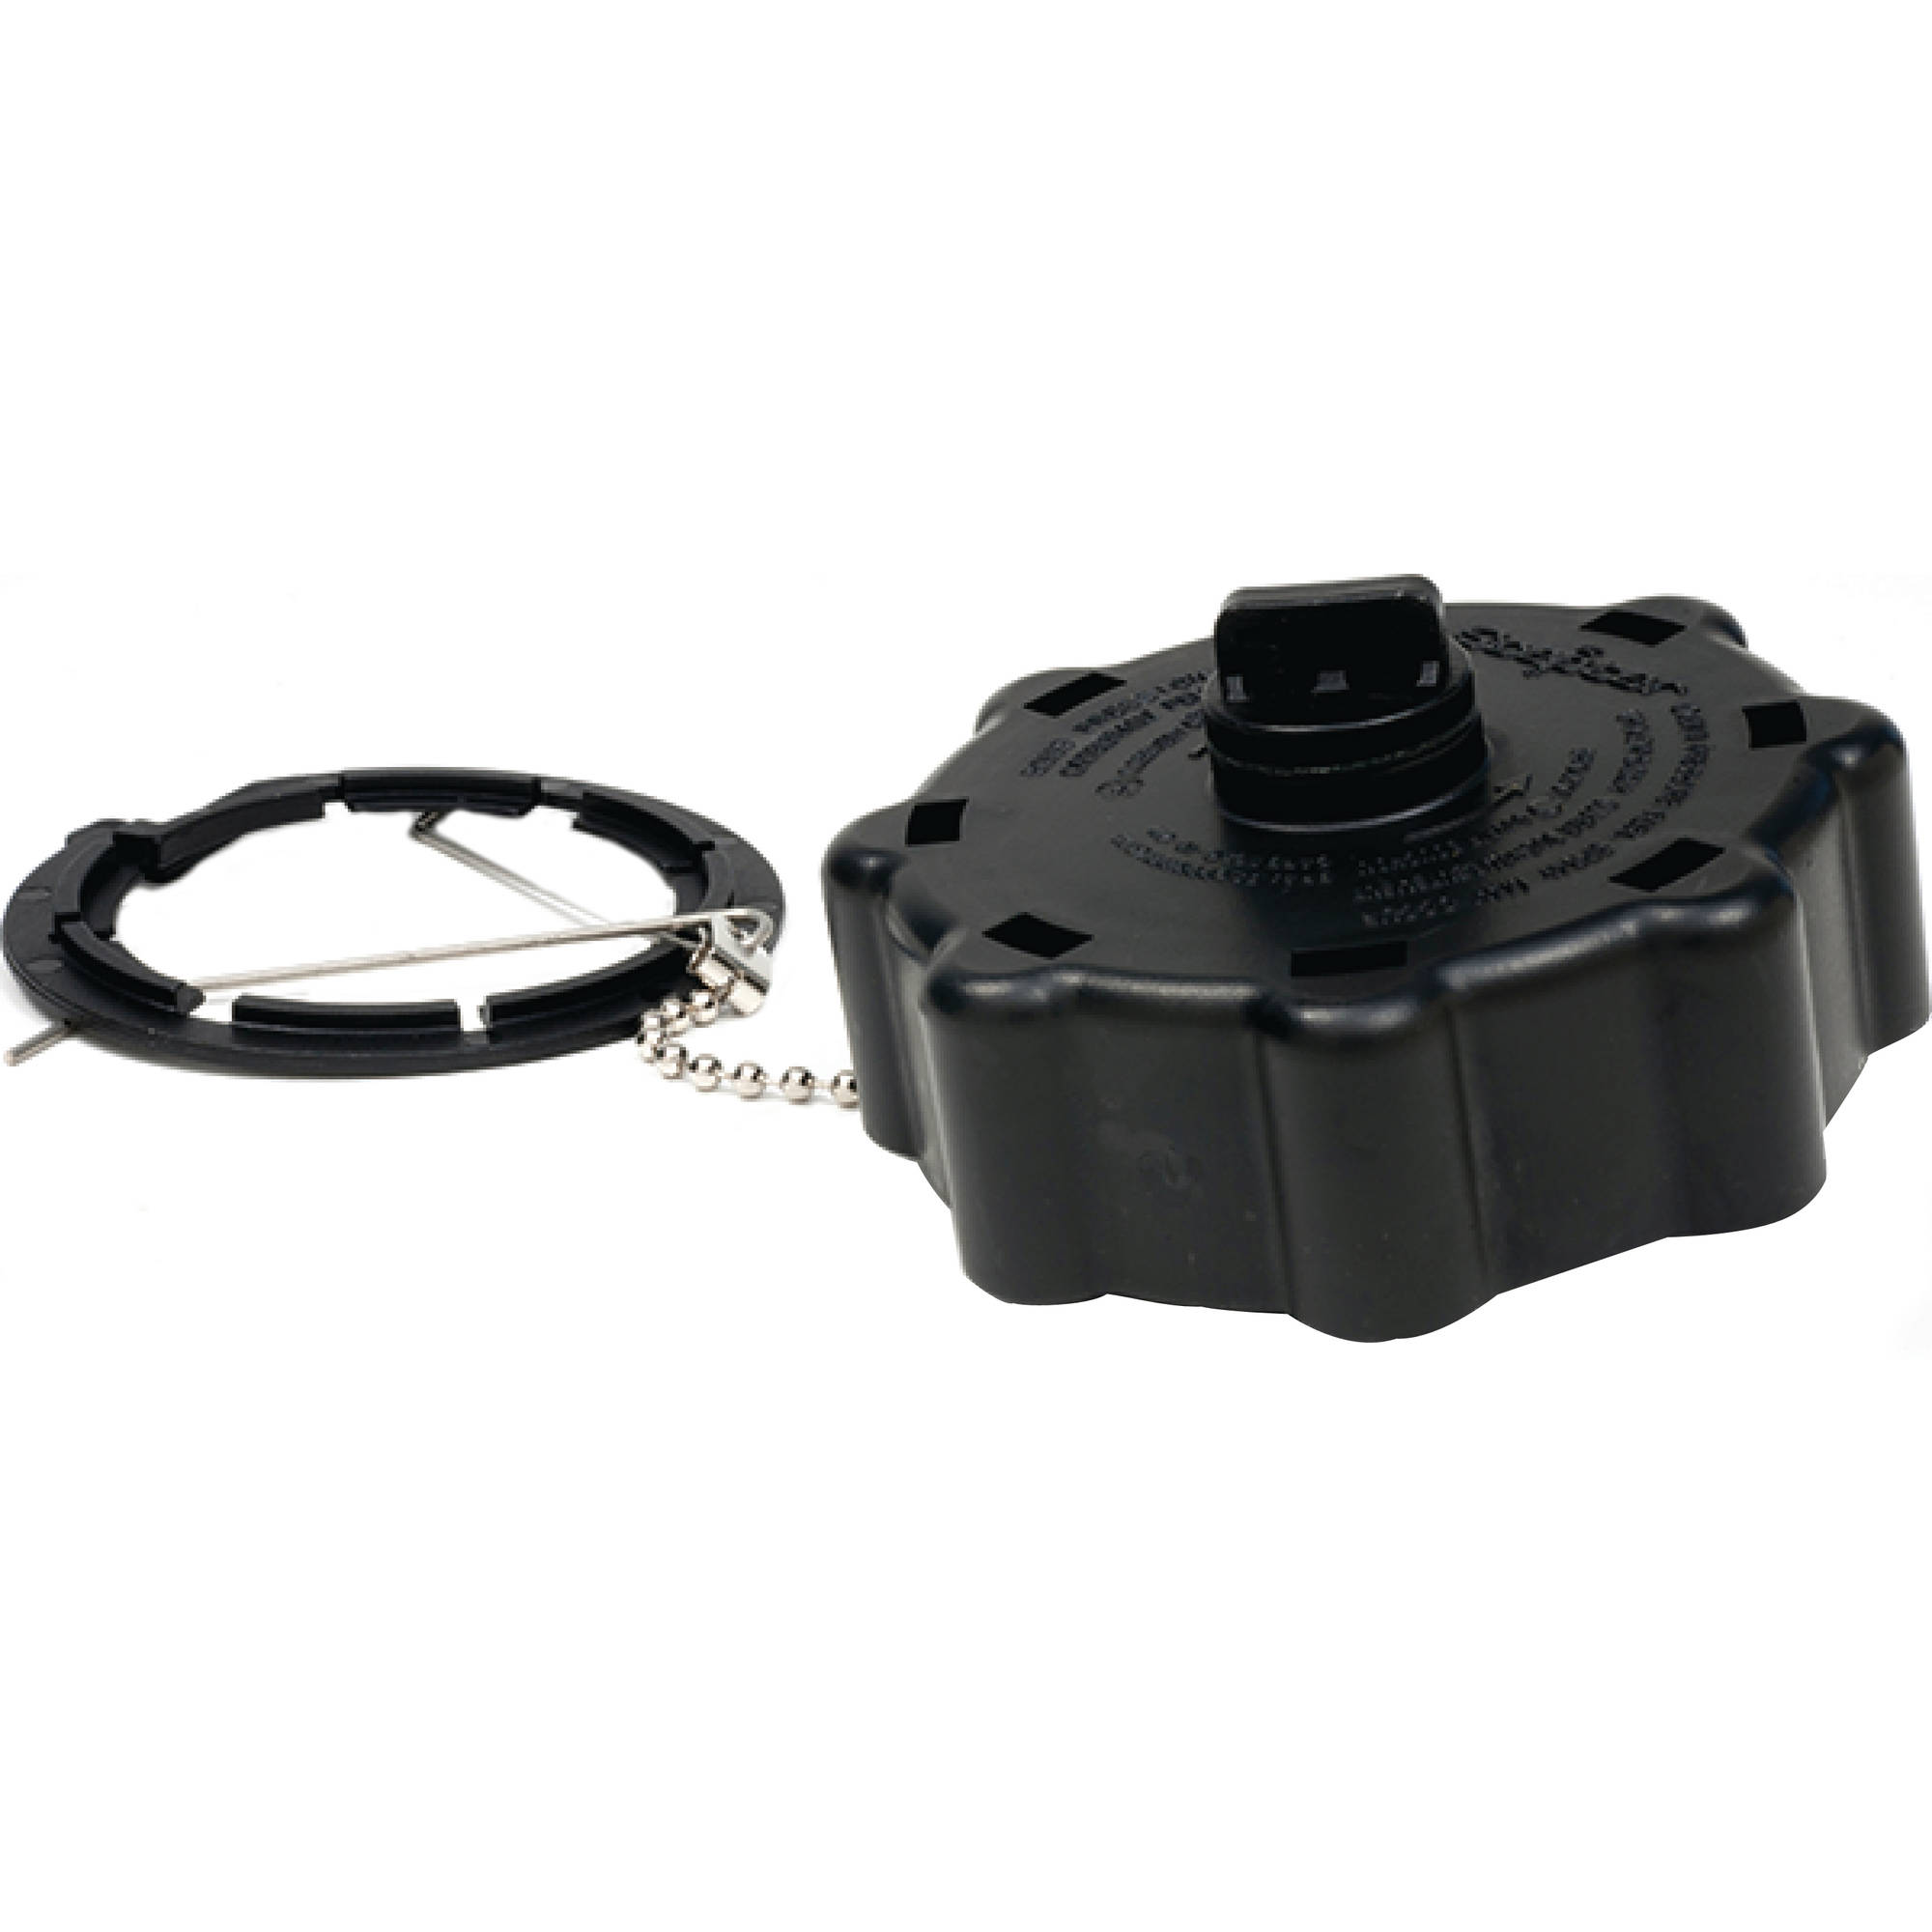 Scepter 09315 EPA/Carb Replacement Cap With Chain and Tether (Fits ALL Scepter EPA Portable Tanks)